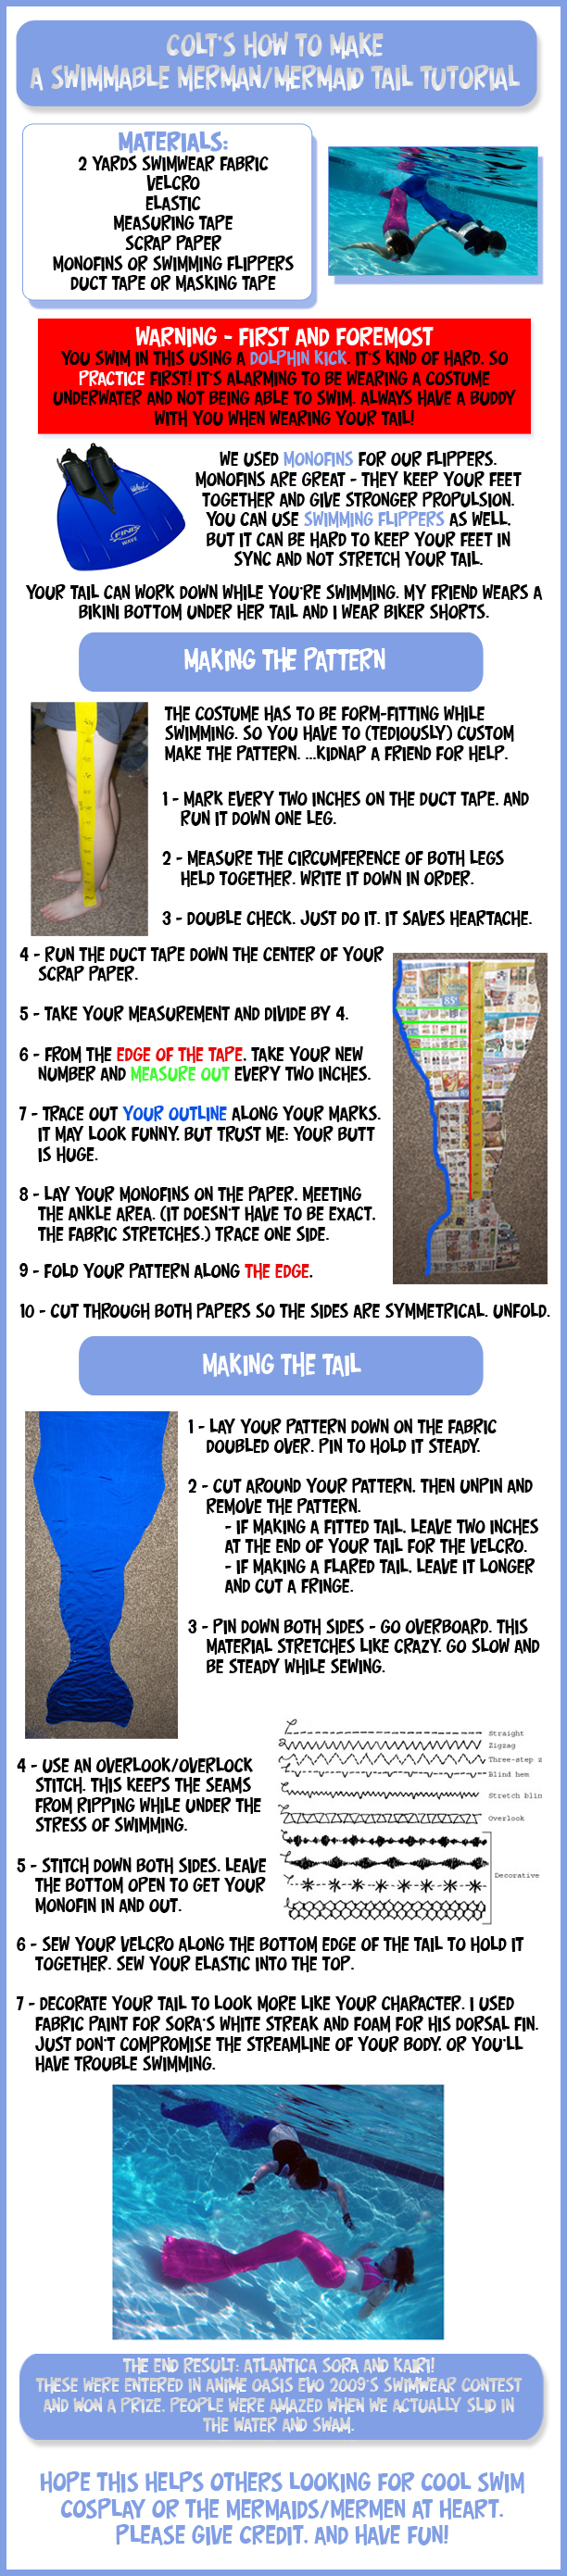 How-to: Swimmable mermaid tail by Colt-kun